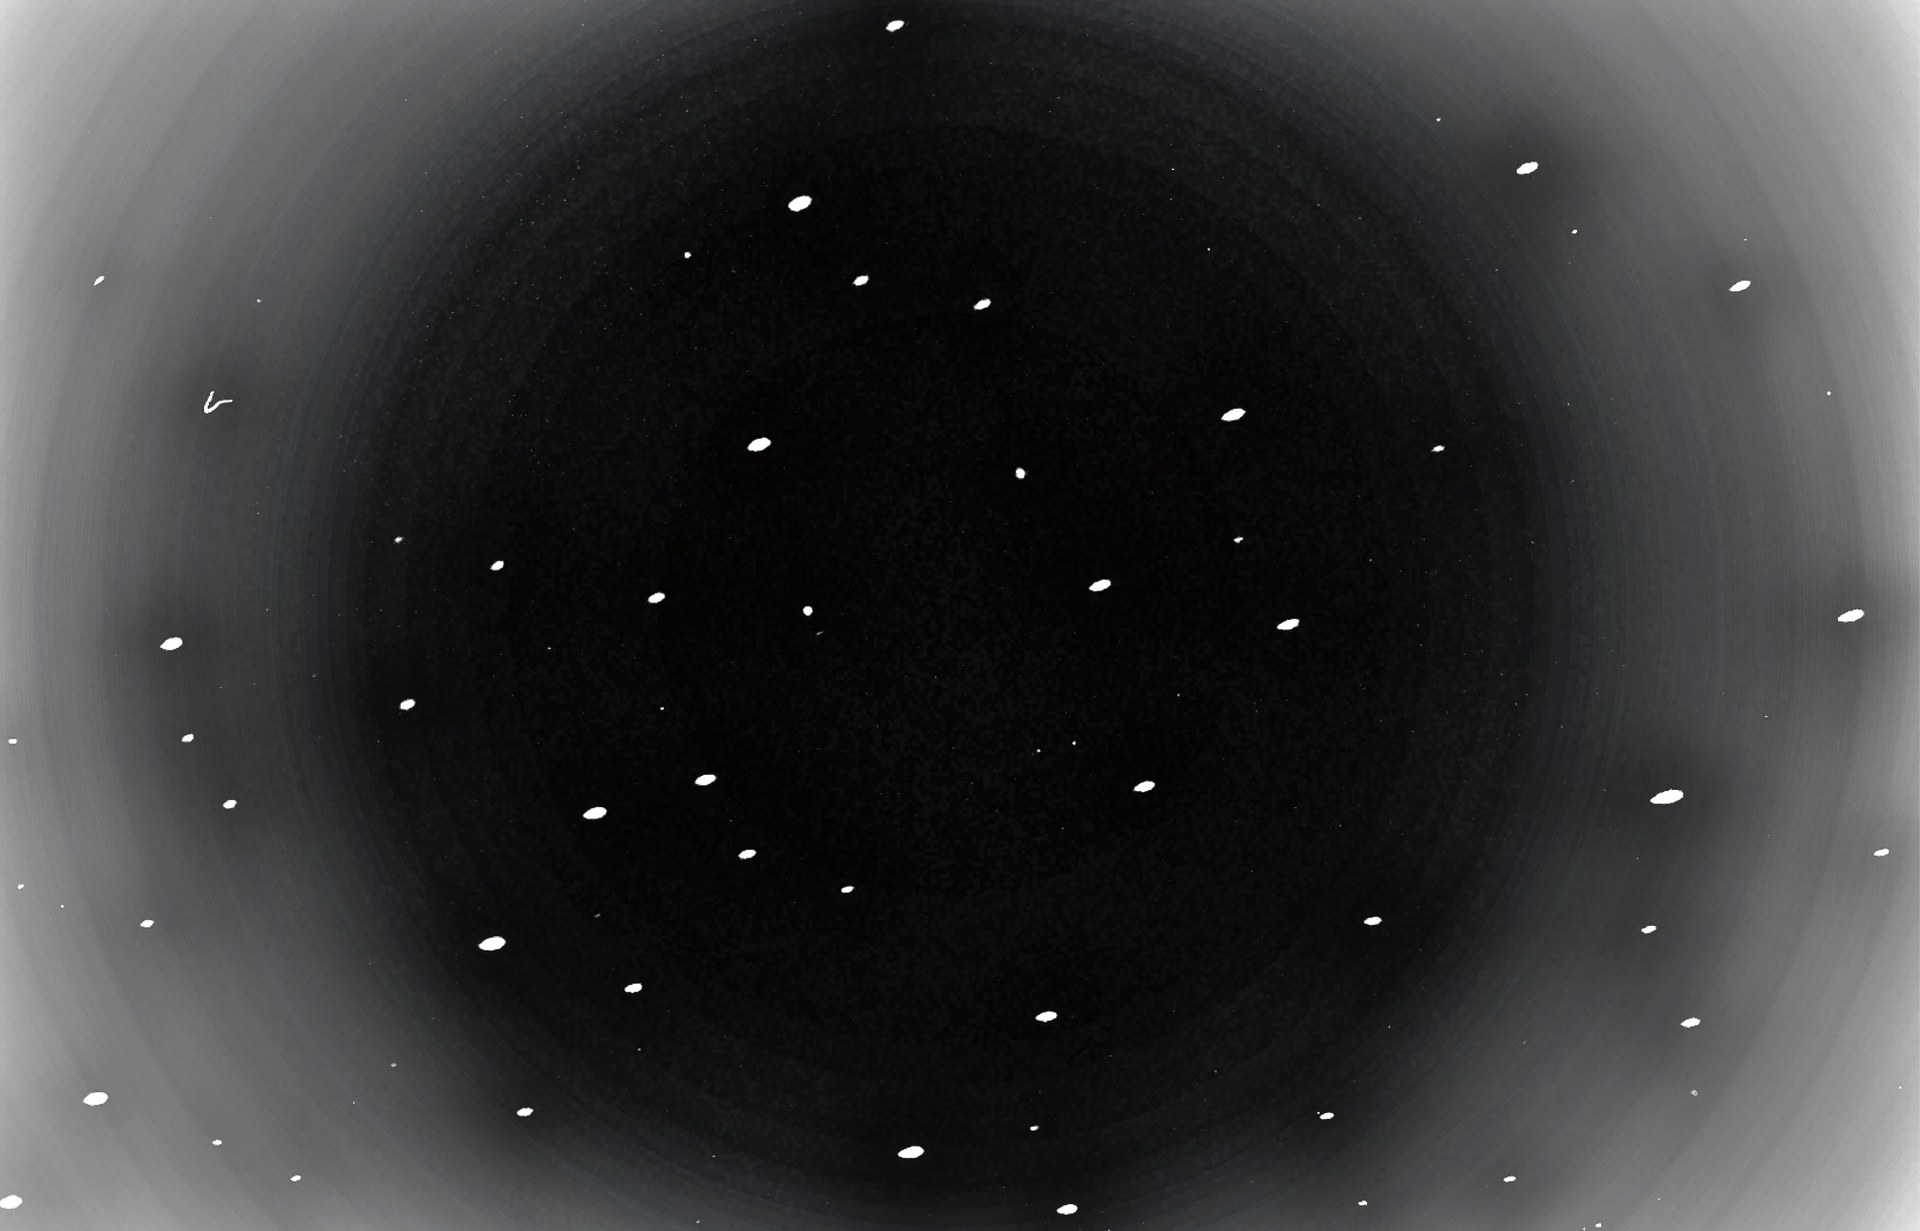 Nest poems / In << the poetics of space>>, it metaphor home as a universe